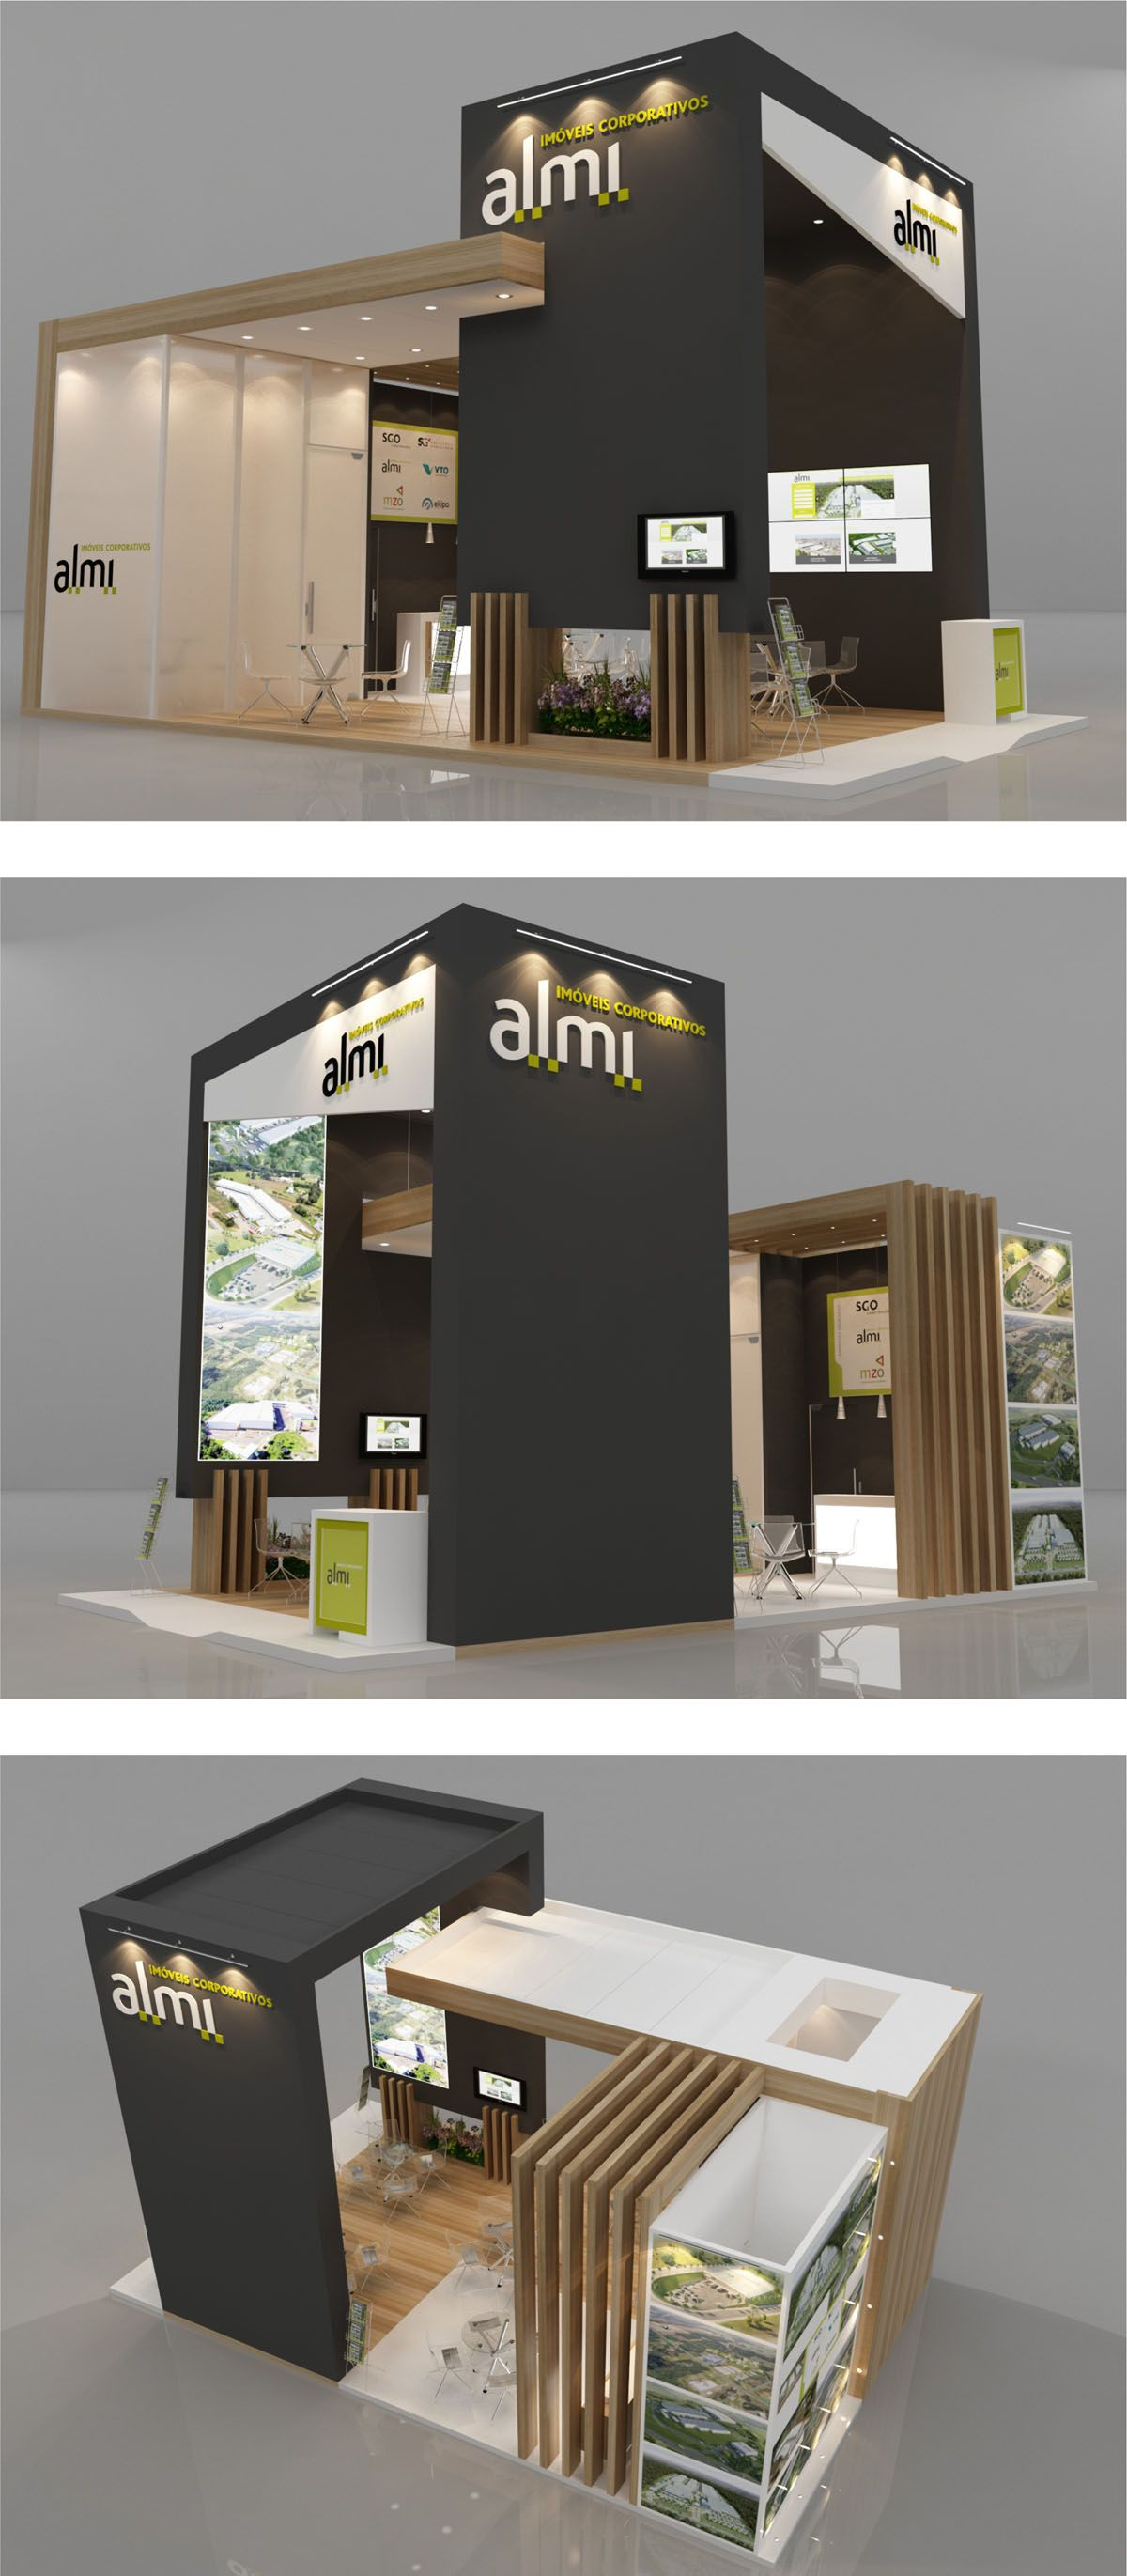 Expo Exhibition Stands Questions : Booth architecture creative design stand debs